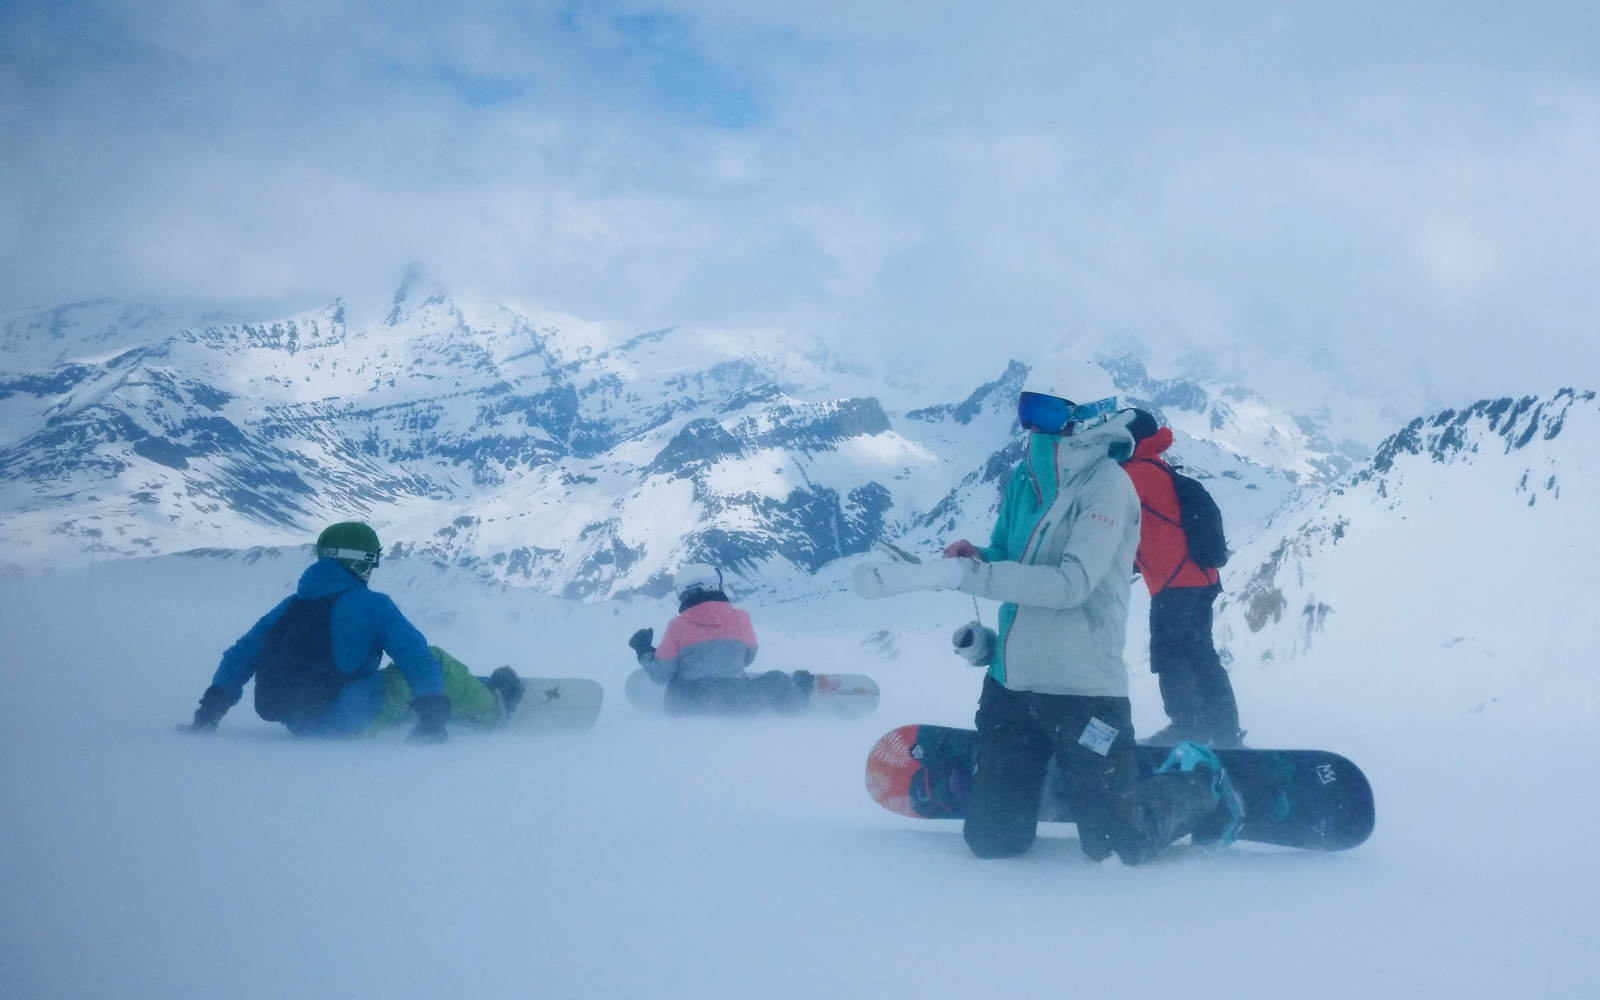 Snowboarders in fog and wind at top